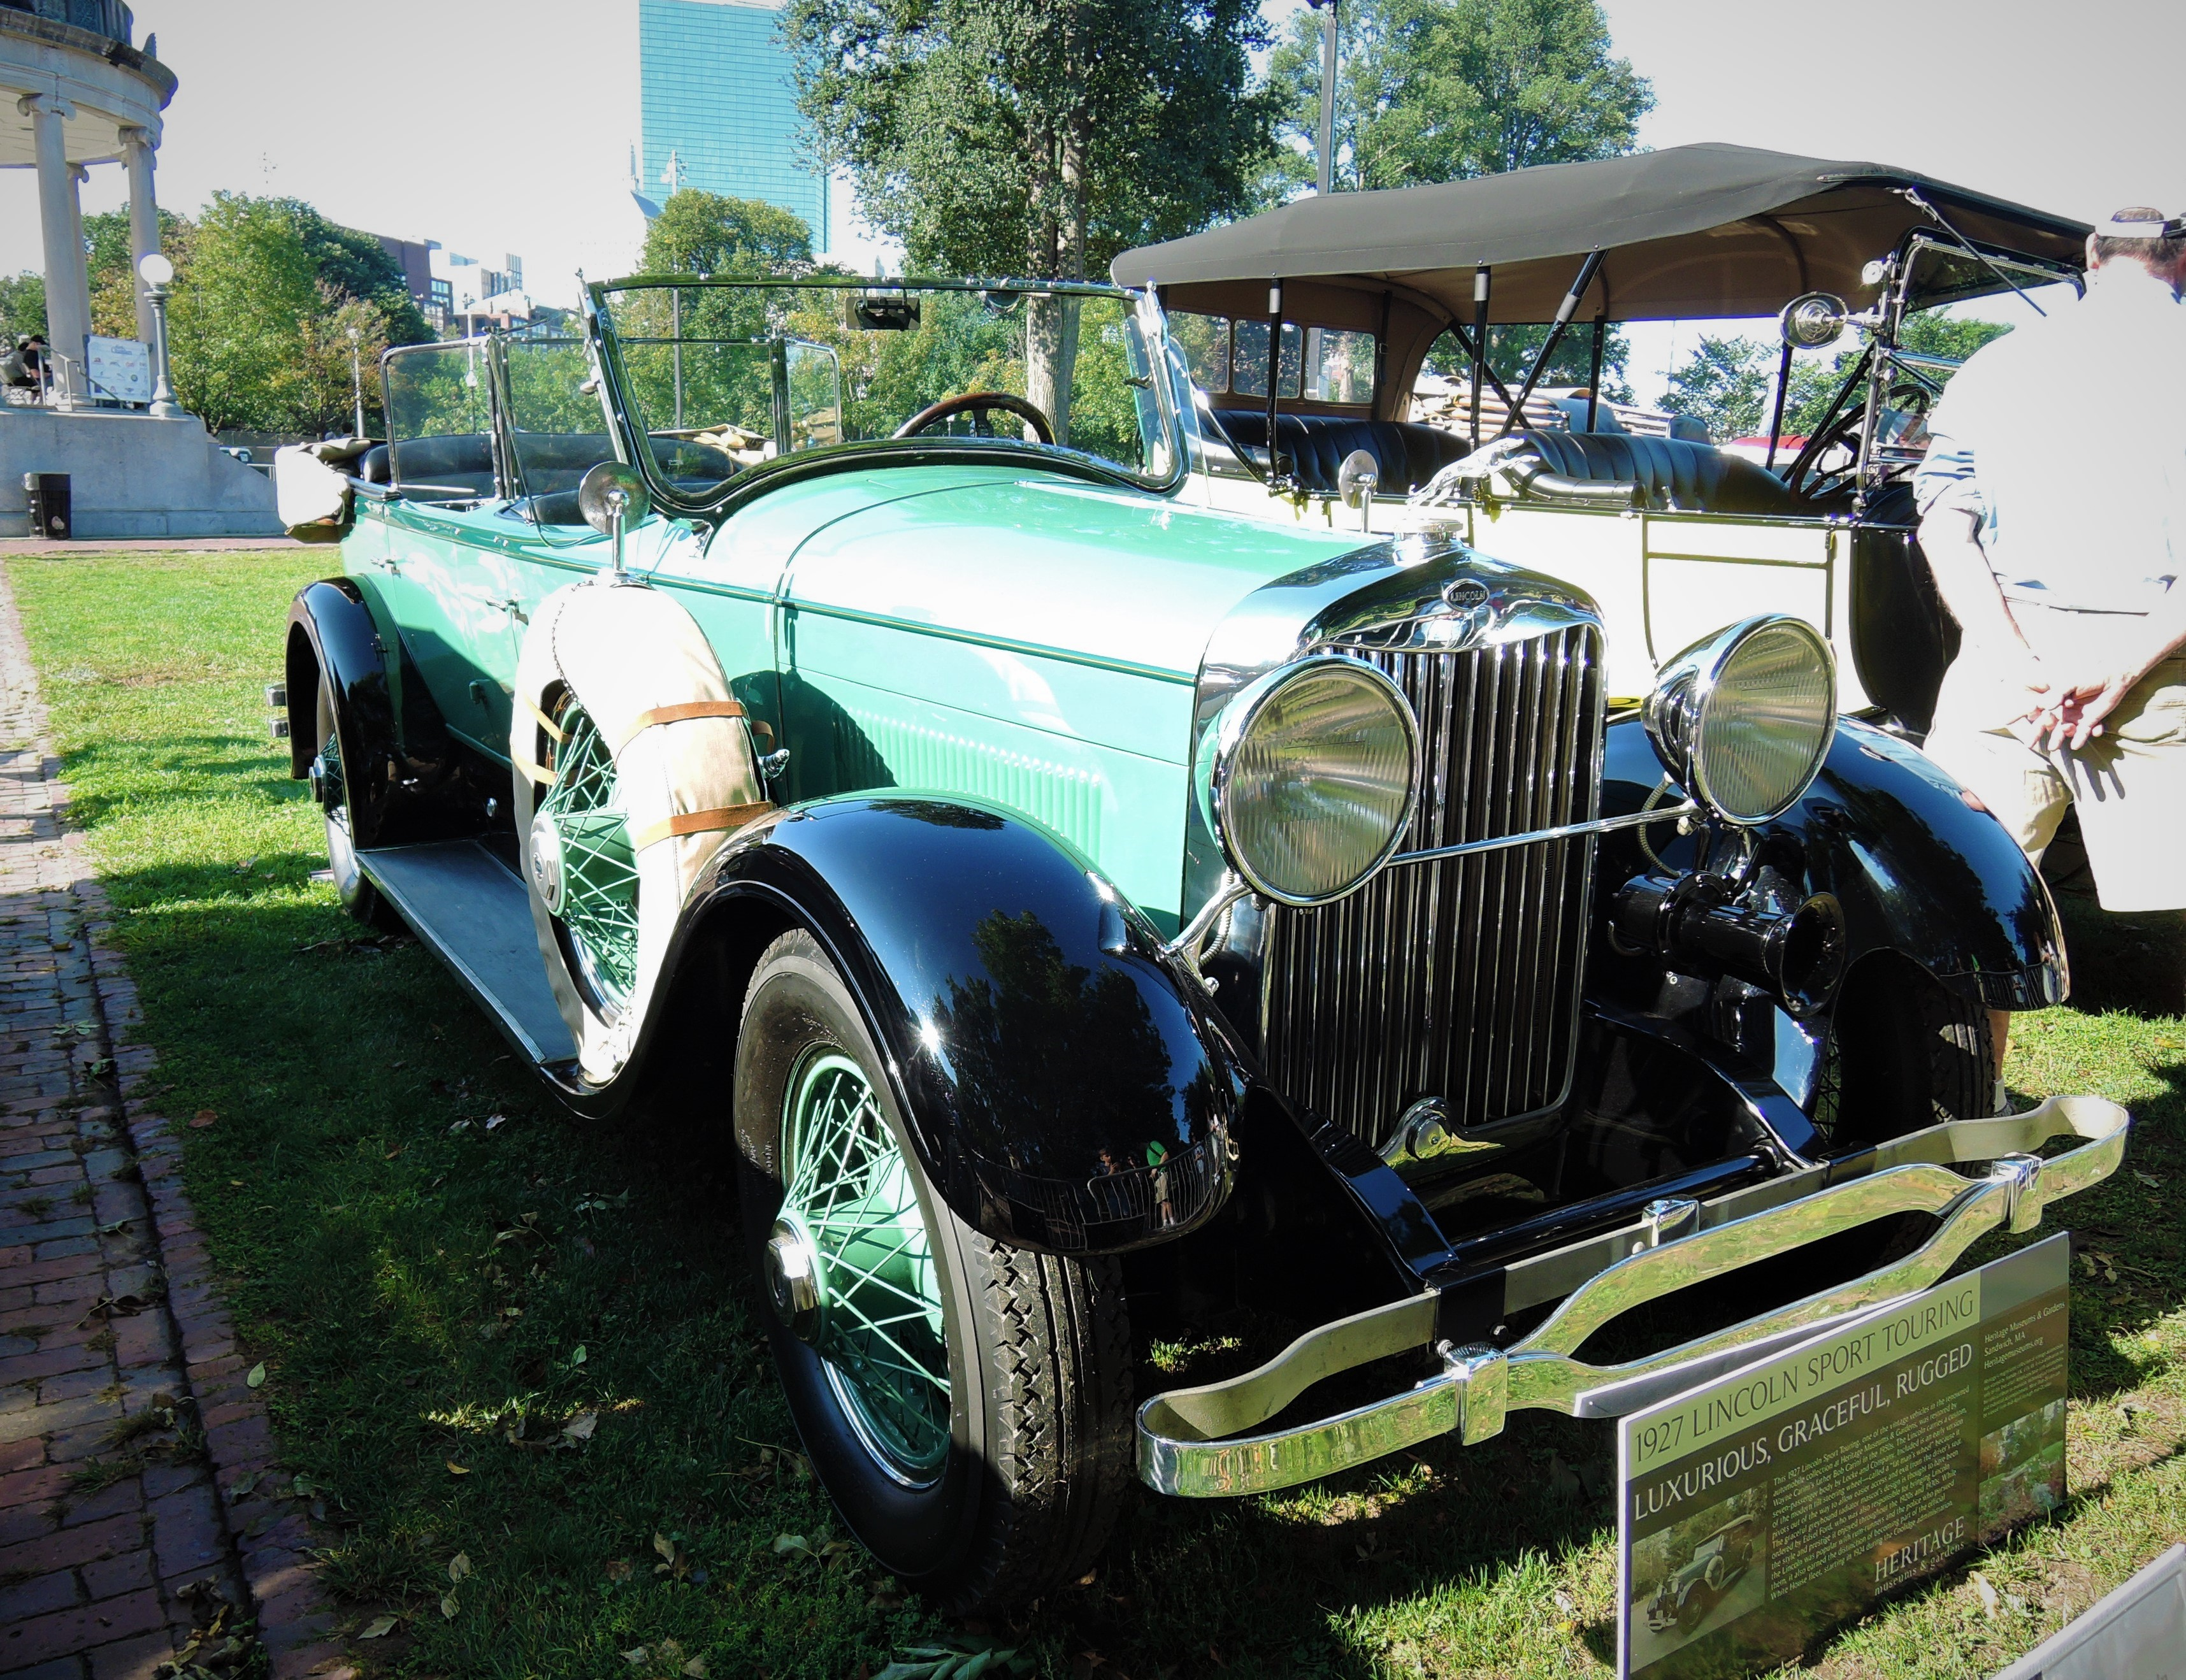 green/black 1927 Lincoln L-385 Sport Touring - The Boston Cup 2017